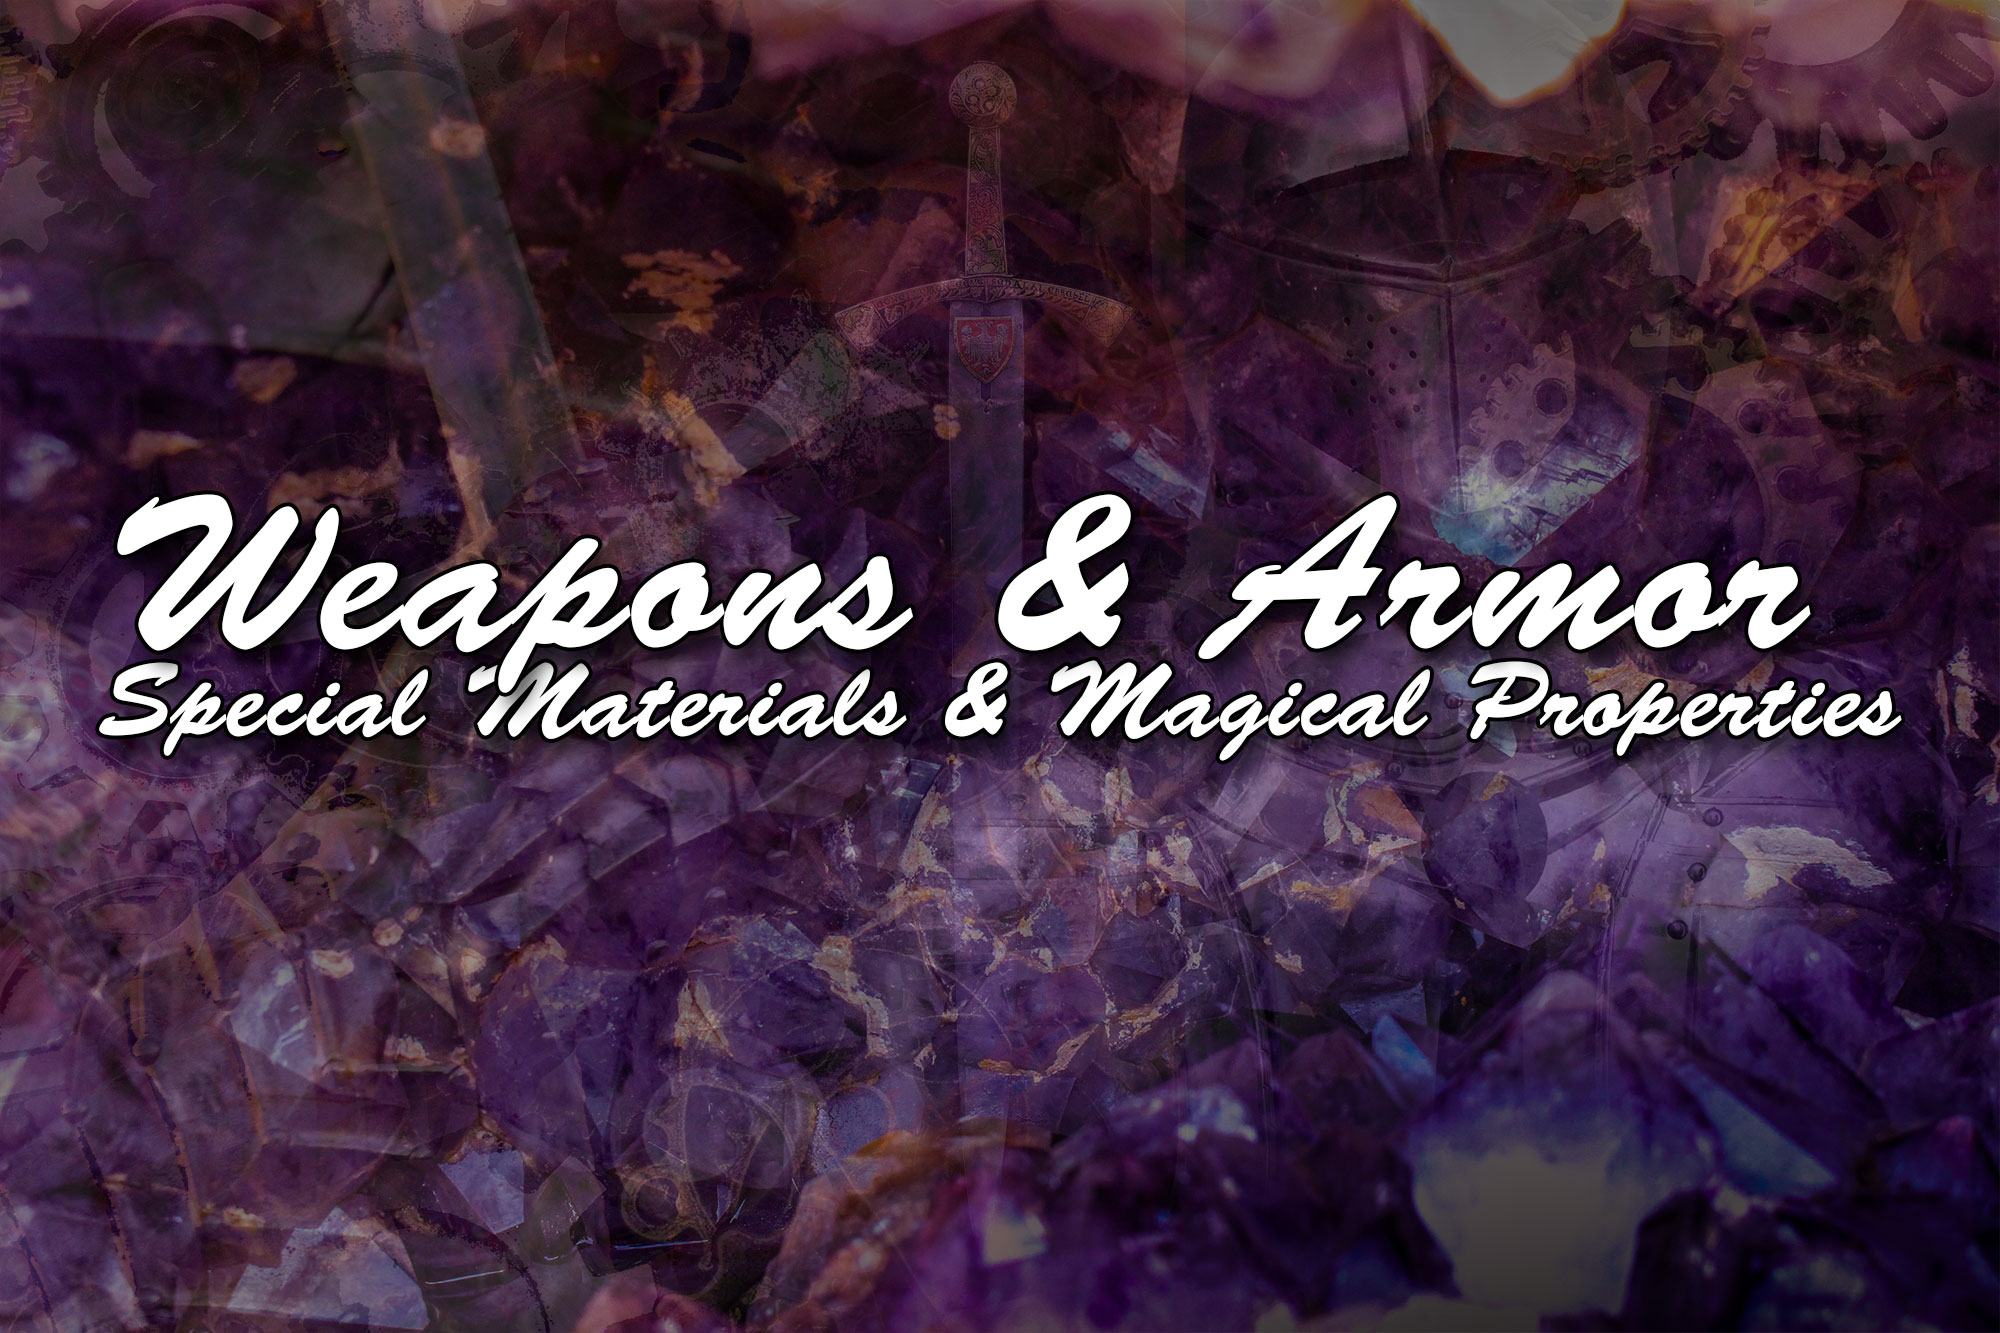 Weapons and Armor Special Materials and Magical Properties Random Generator Charts High Fantasy DnD Dungeons and Dragons Pathfinder D20 RPG